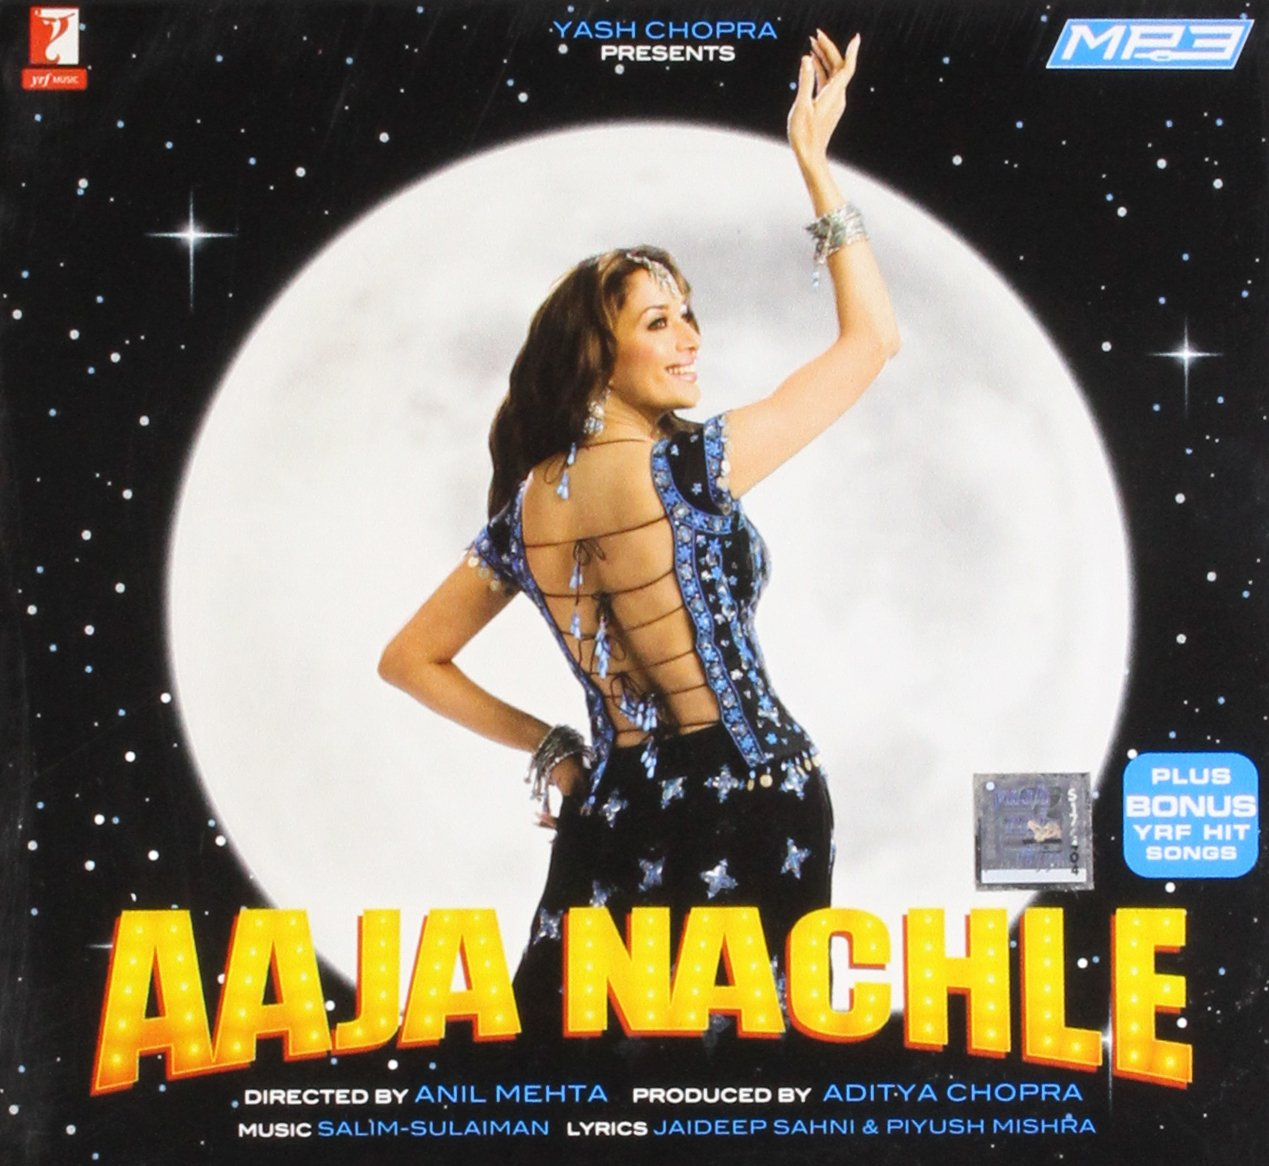 Image result for aaja nachle poster